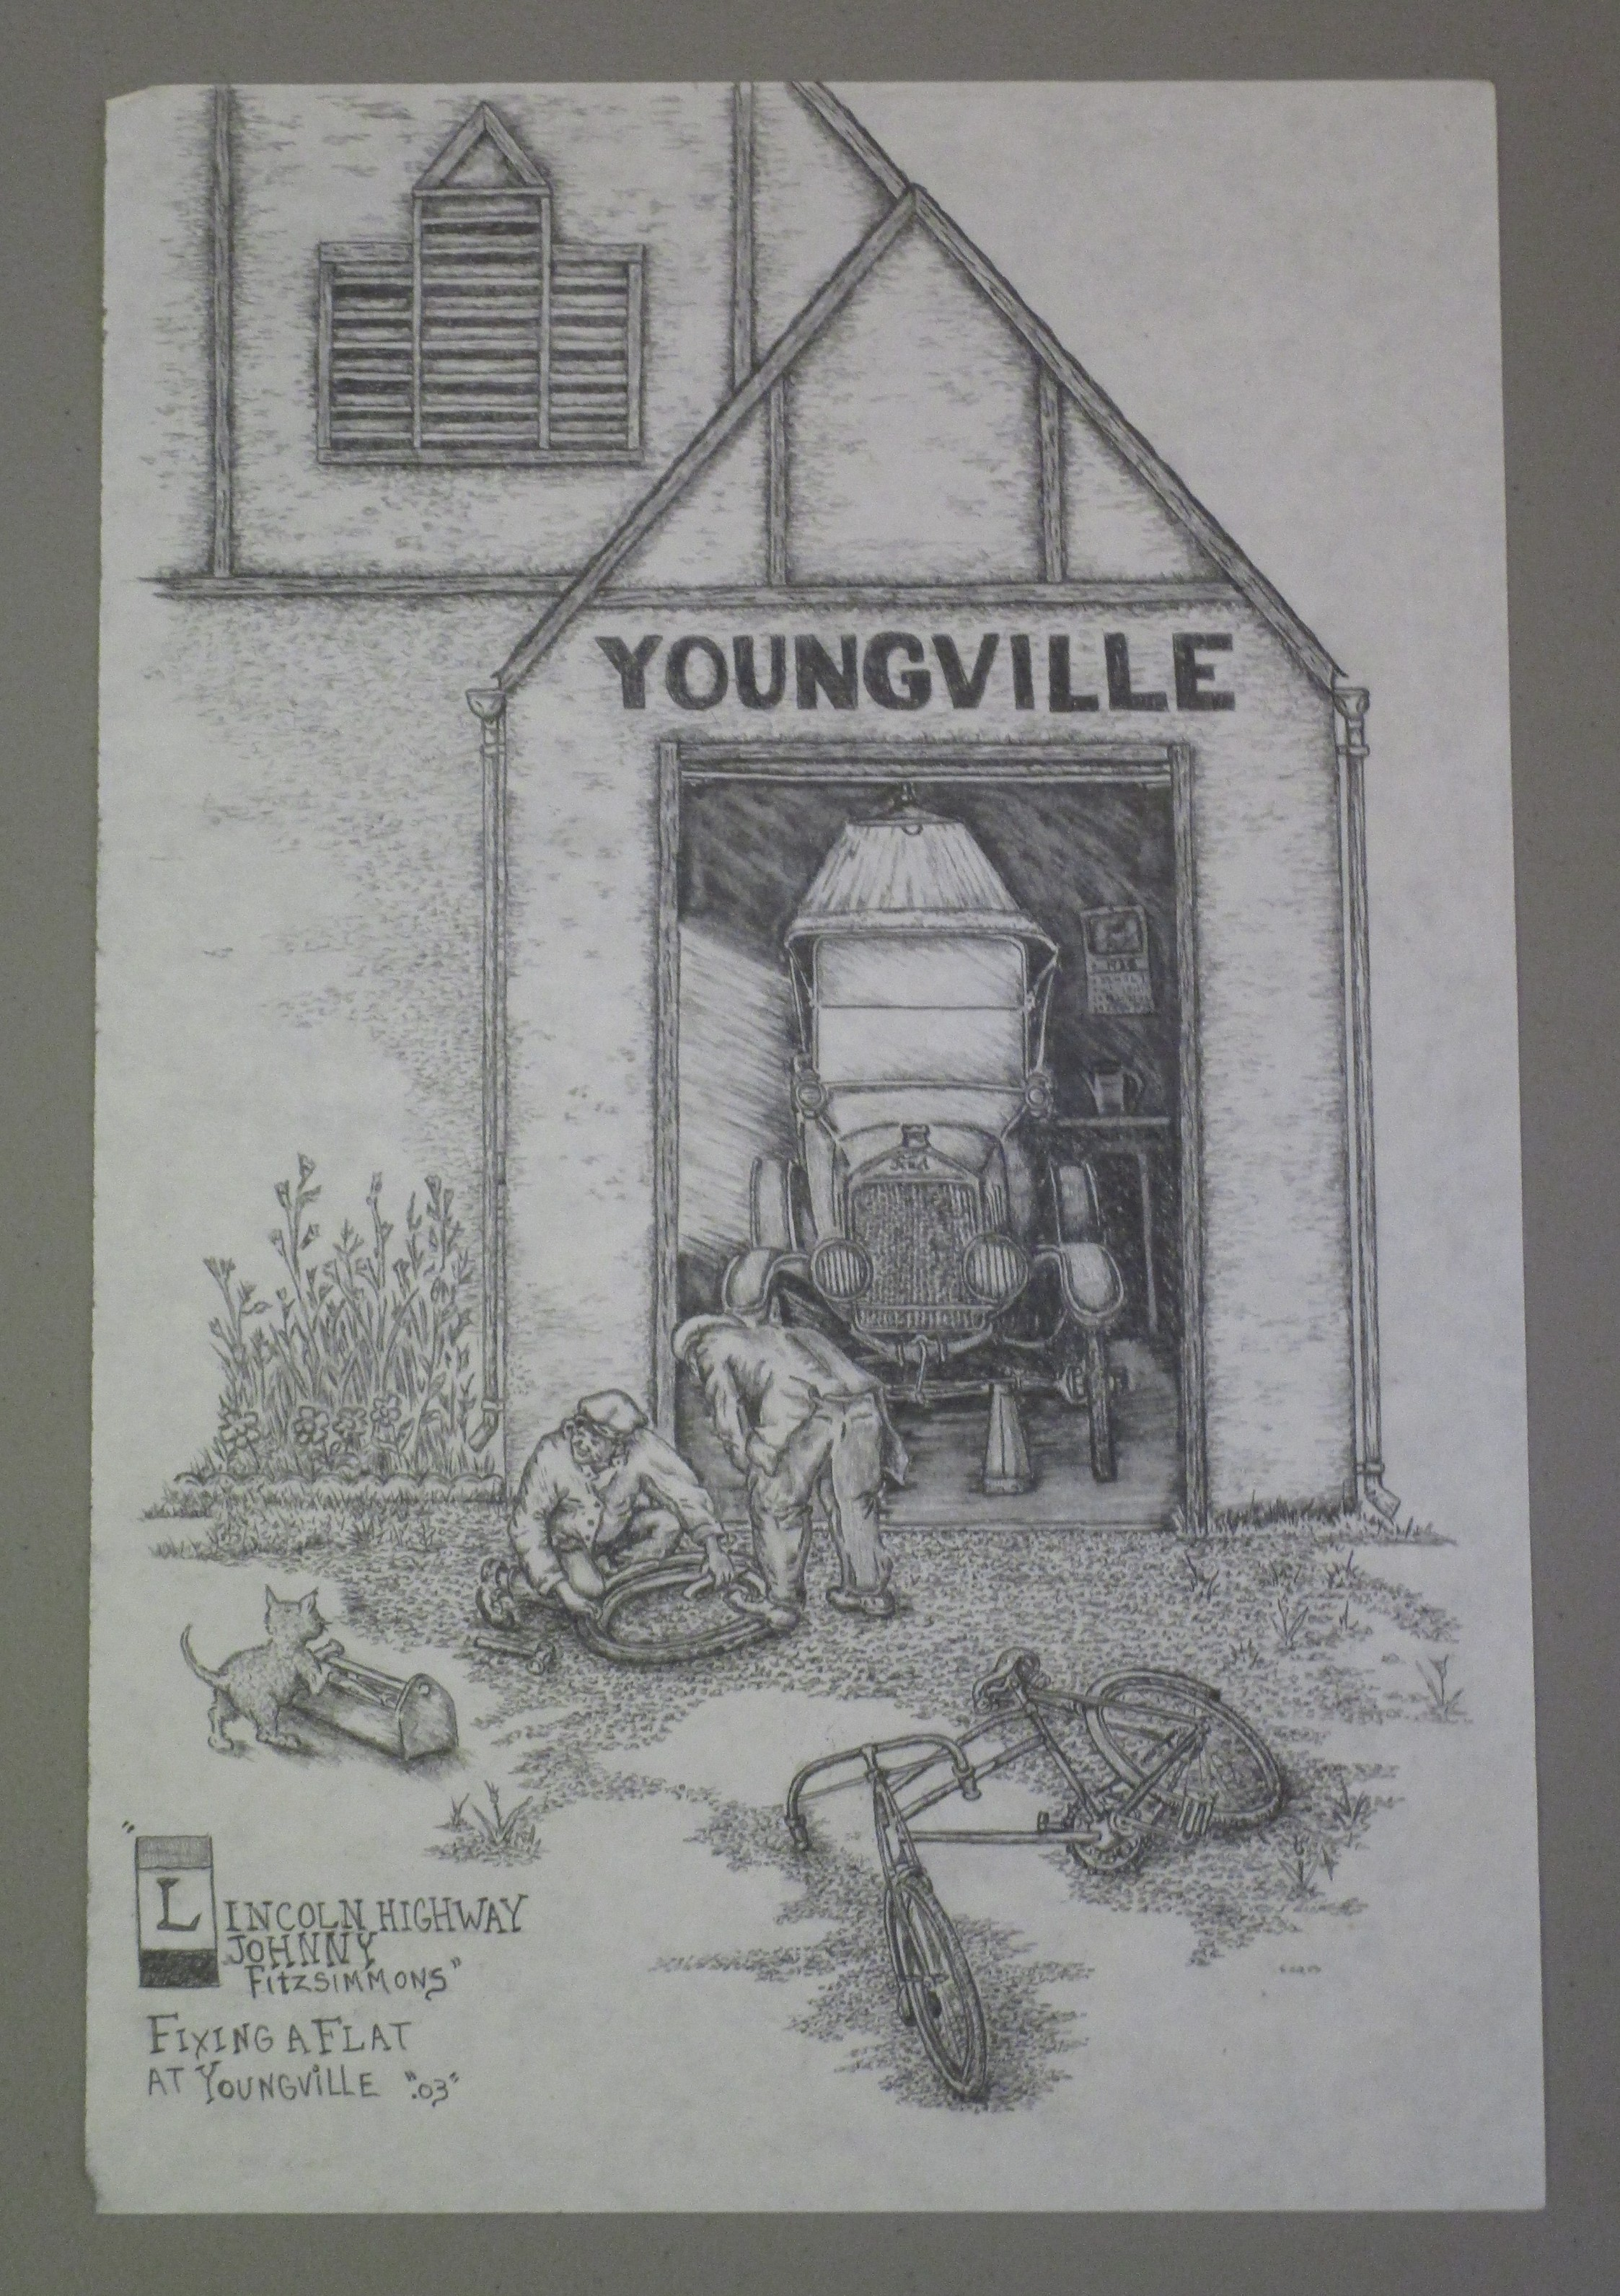 Youngville Station